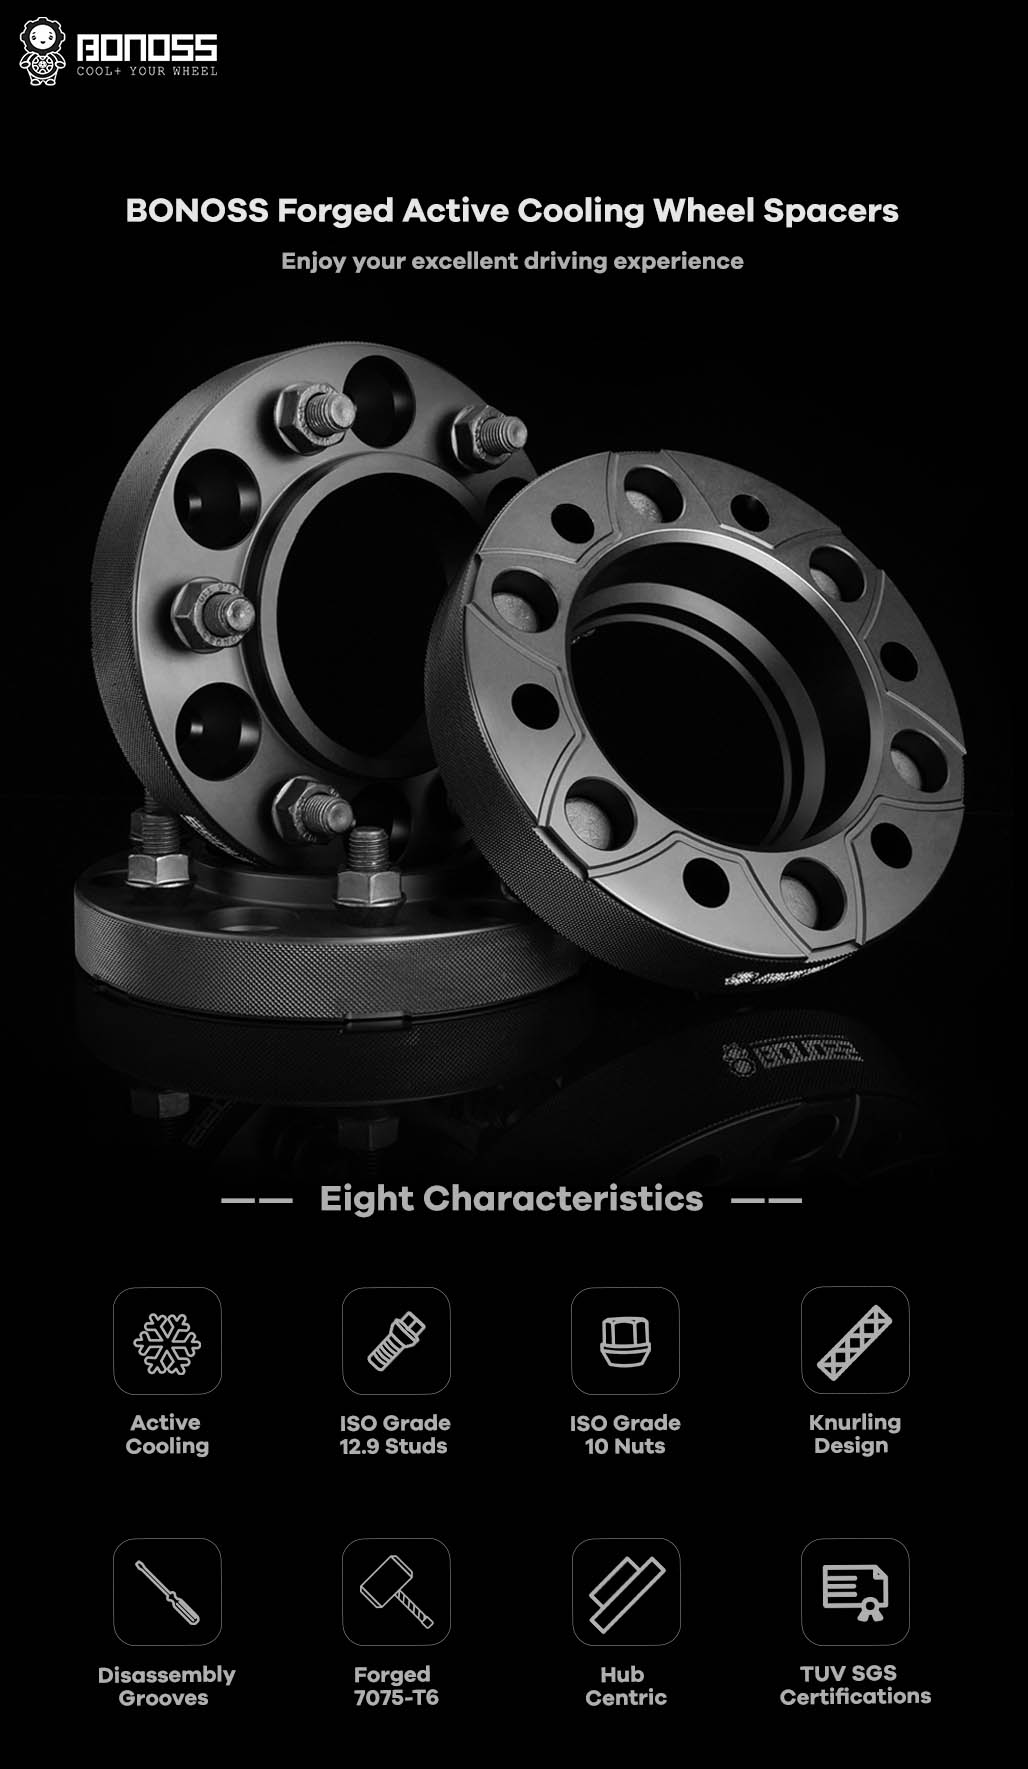 AL7075-T6 BONOSS-forged-active-cooling-wheel-spacer-6X139.7-108-M12X1.5-by-lulu-1